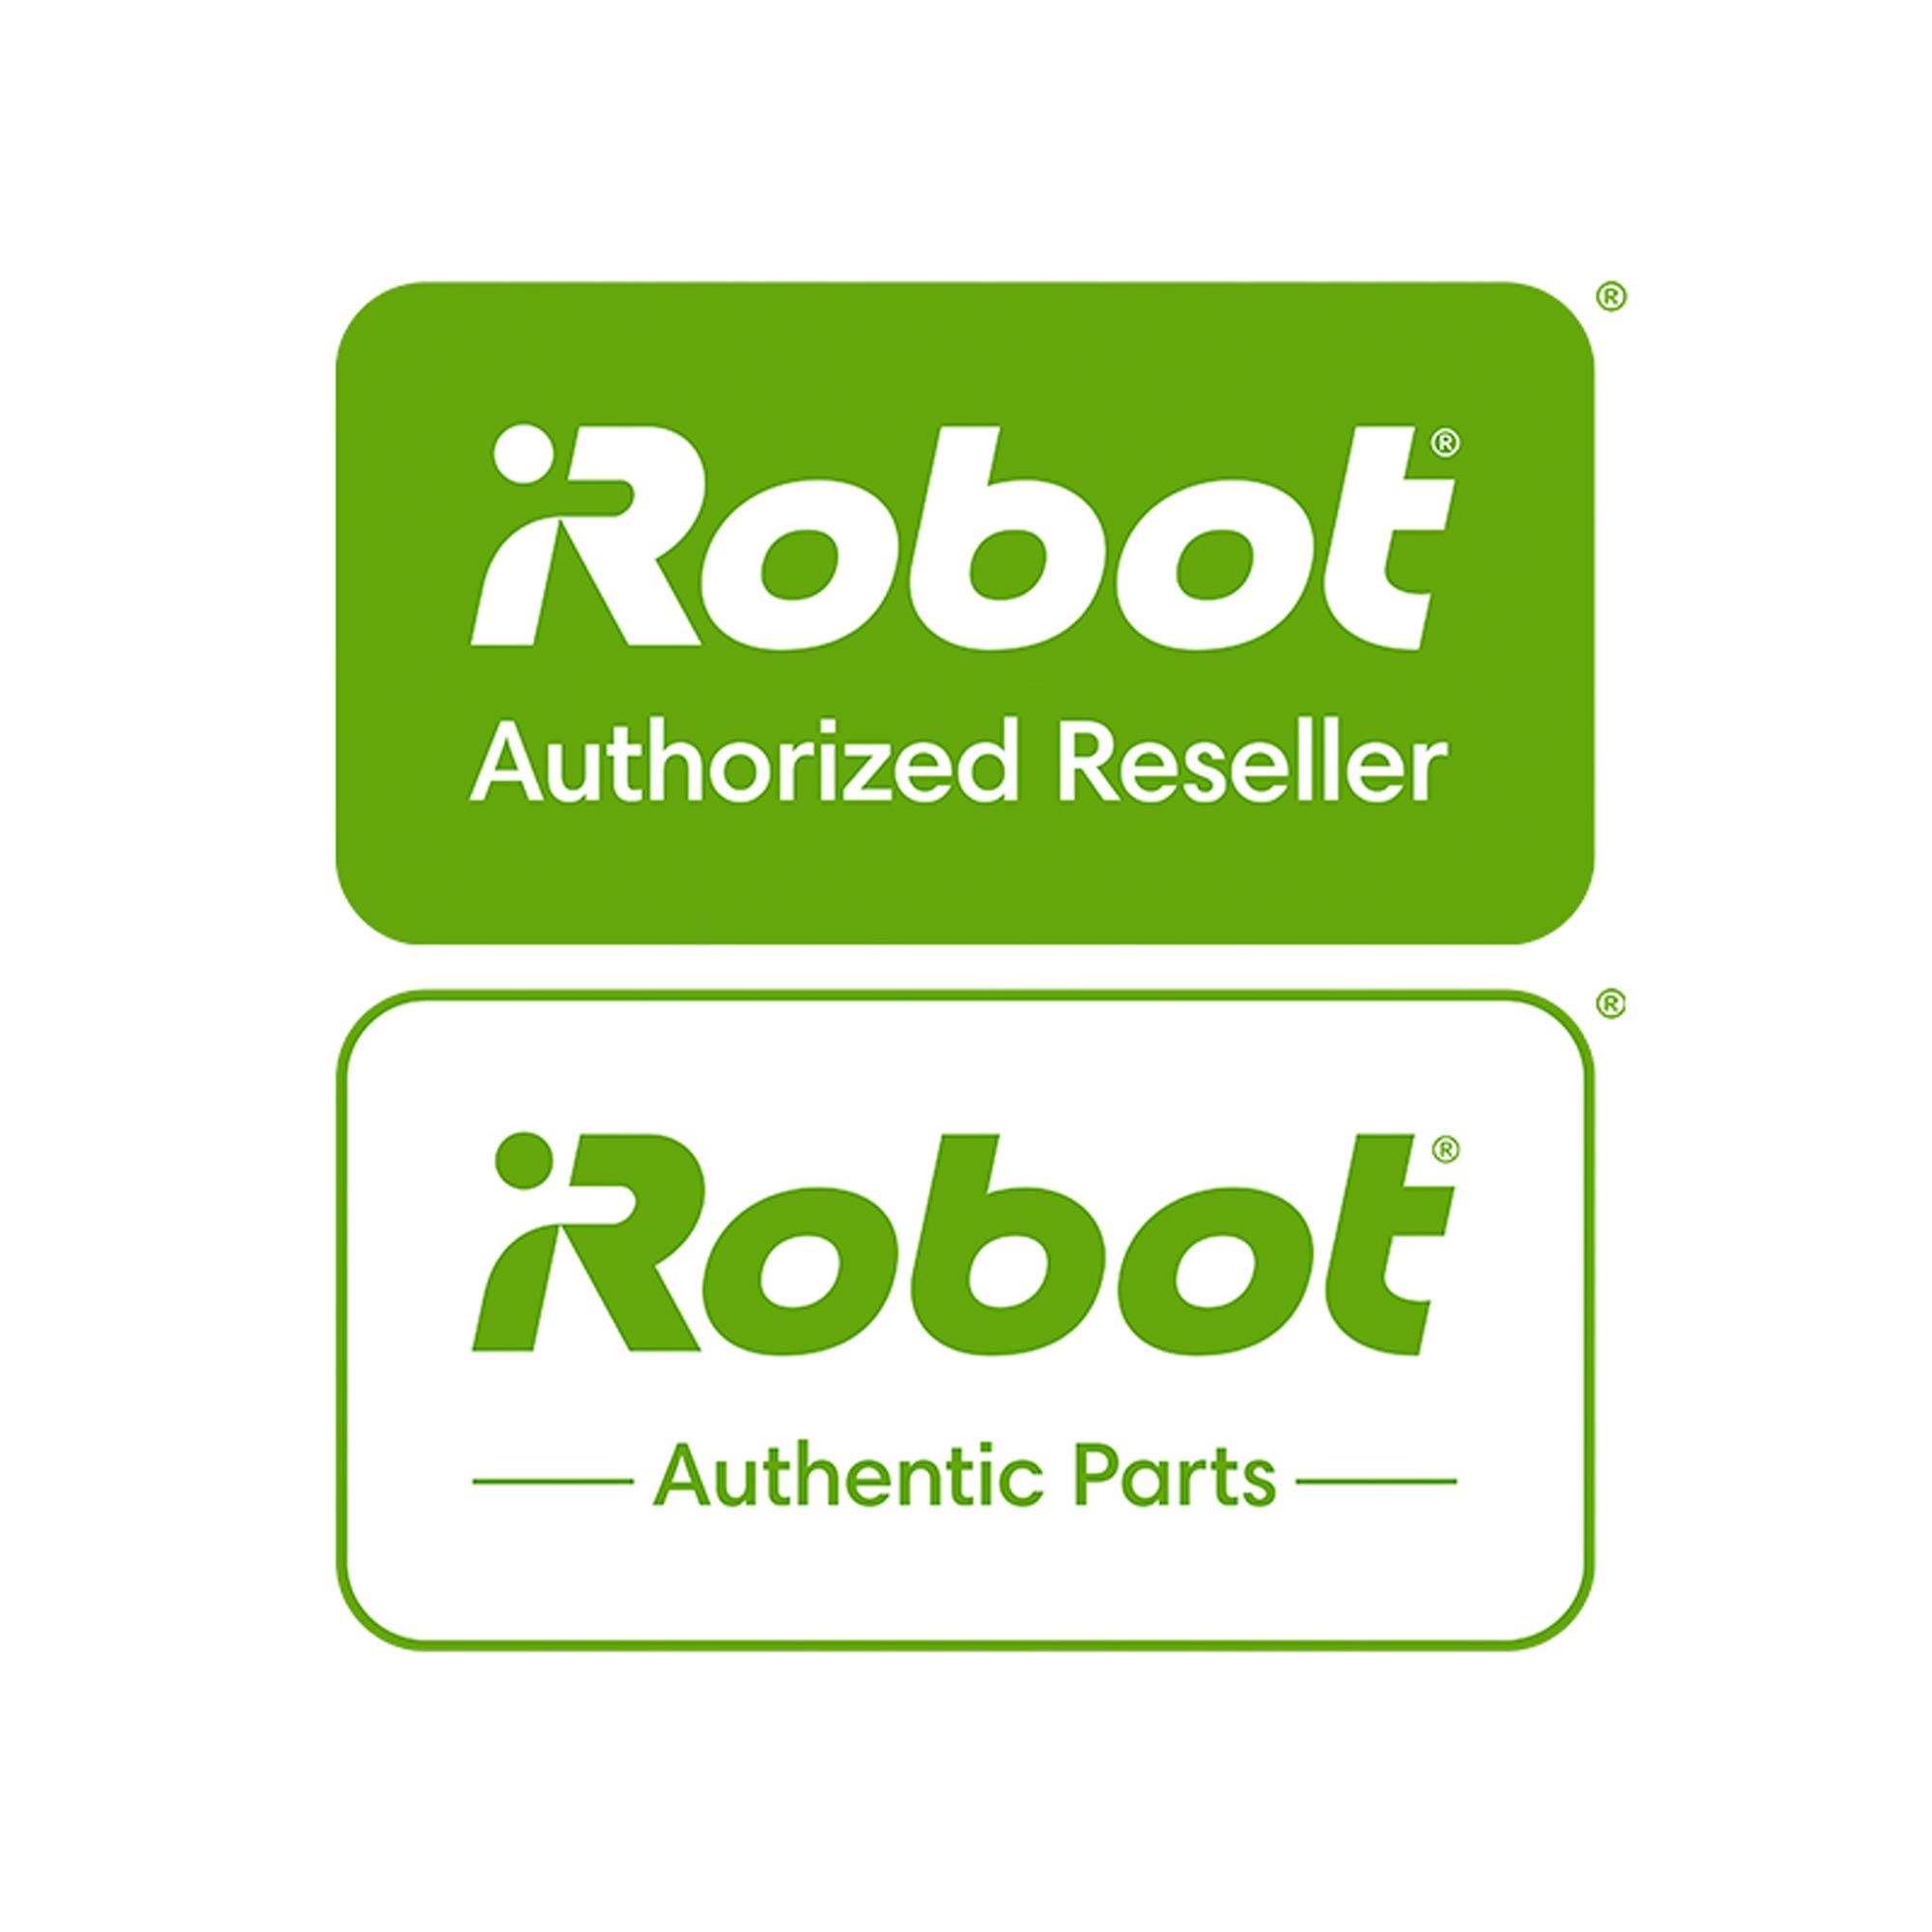 iRobot Authentic Replacement Parts-   Roomba 600 Series Replenishment Kit (1 bristle brush, 1 beater brush, 1 spinning side brush, 3 AeroVac filters, and 1 round cleaning tool) by iRobot